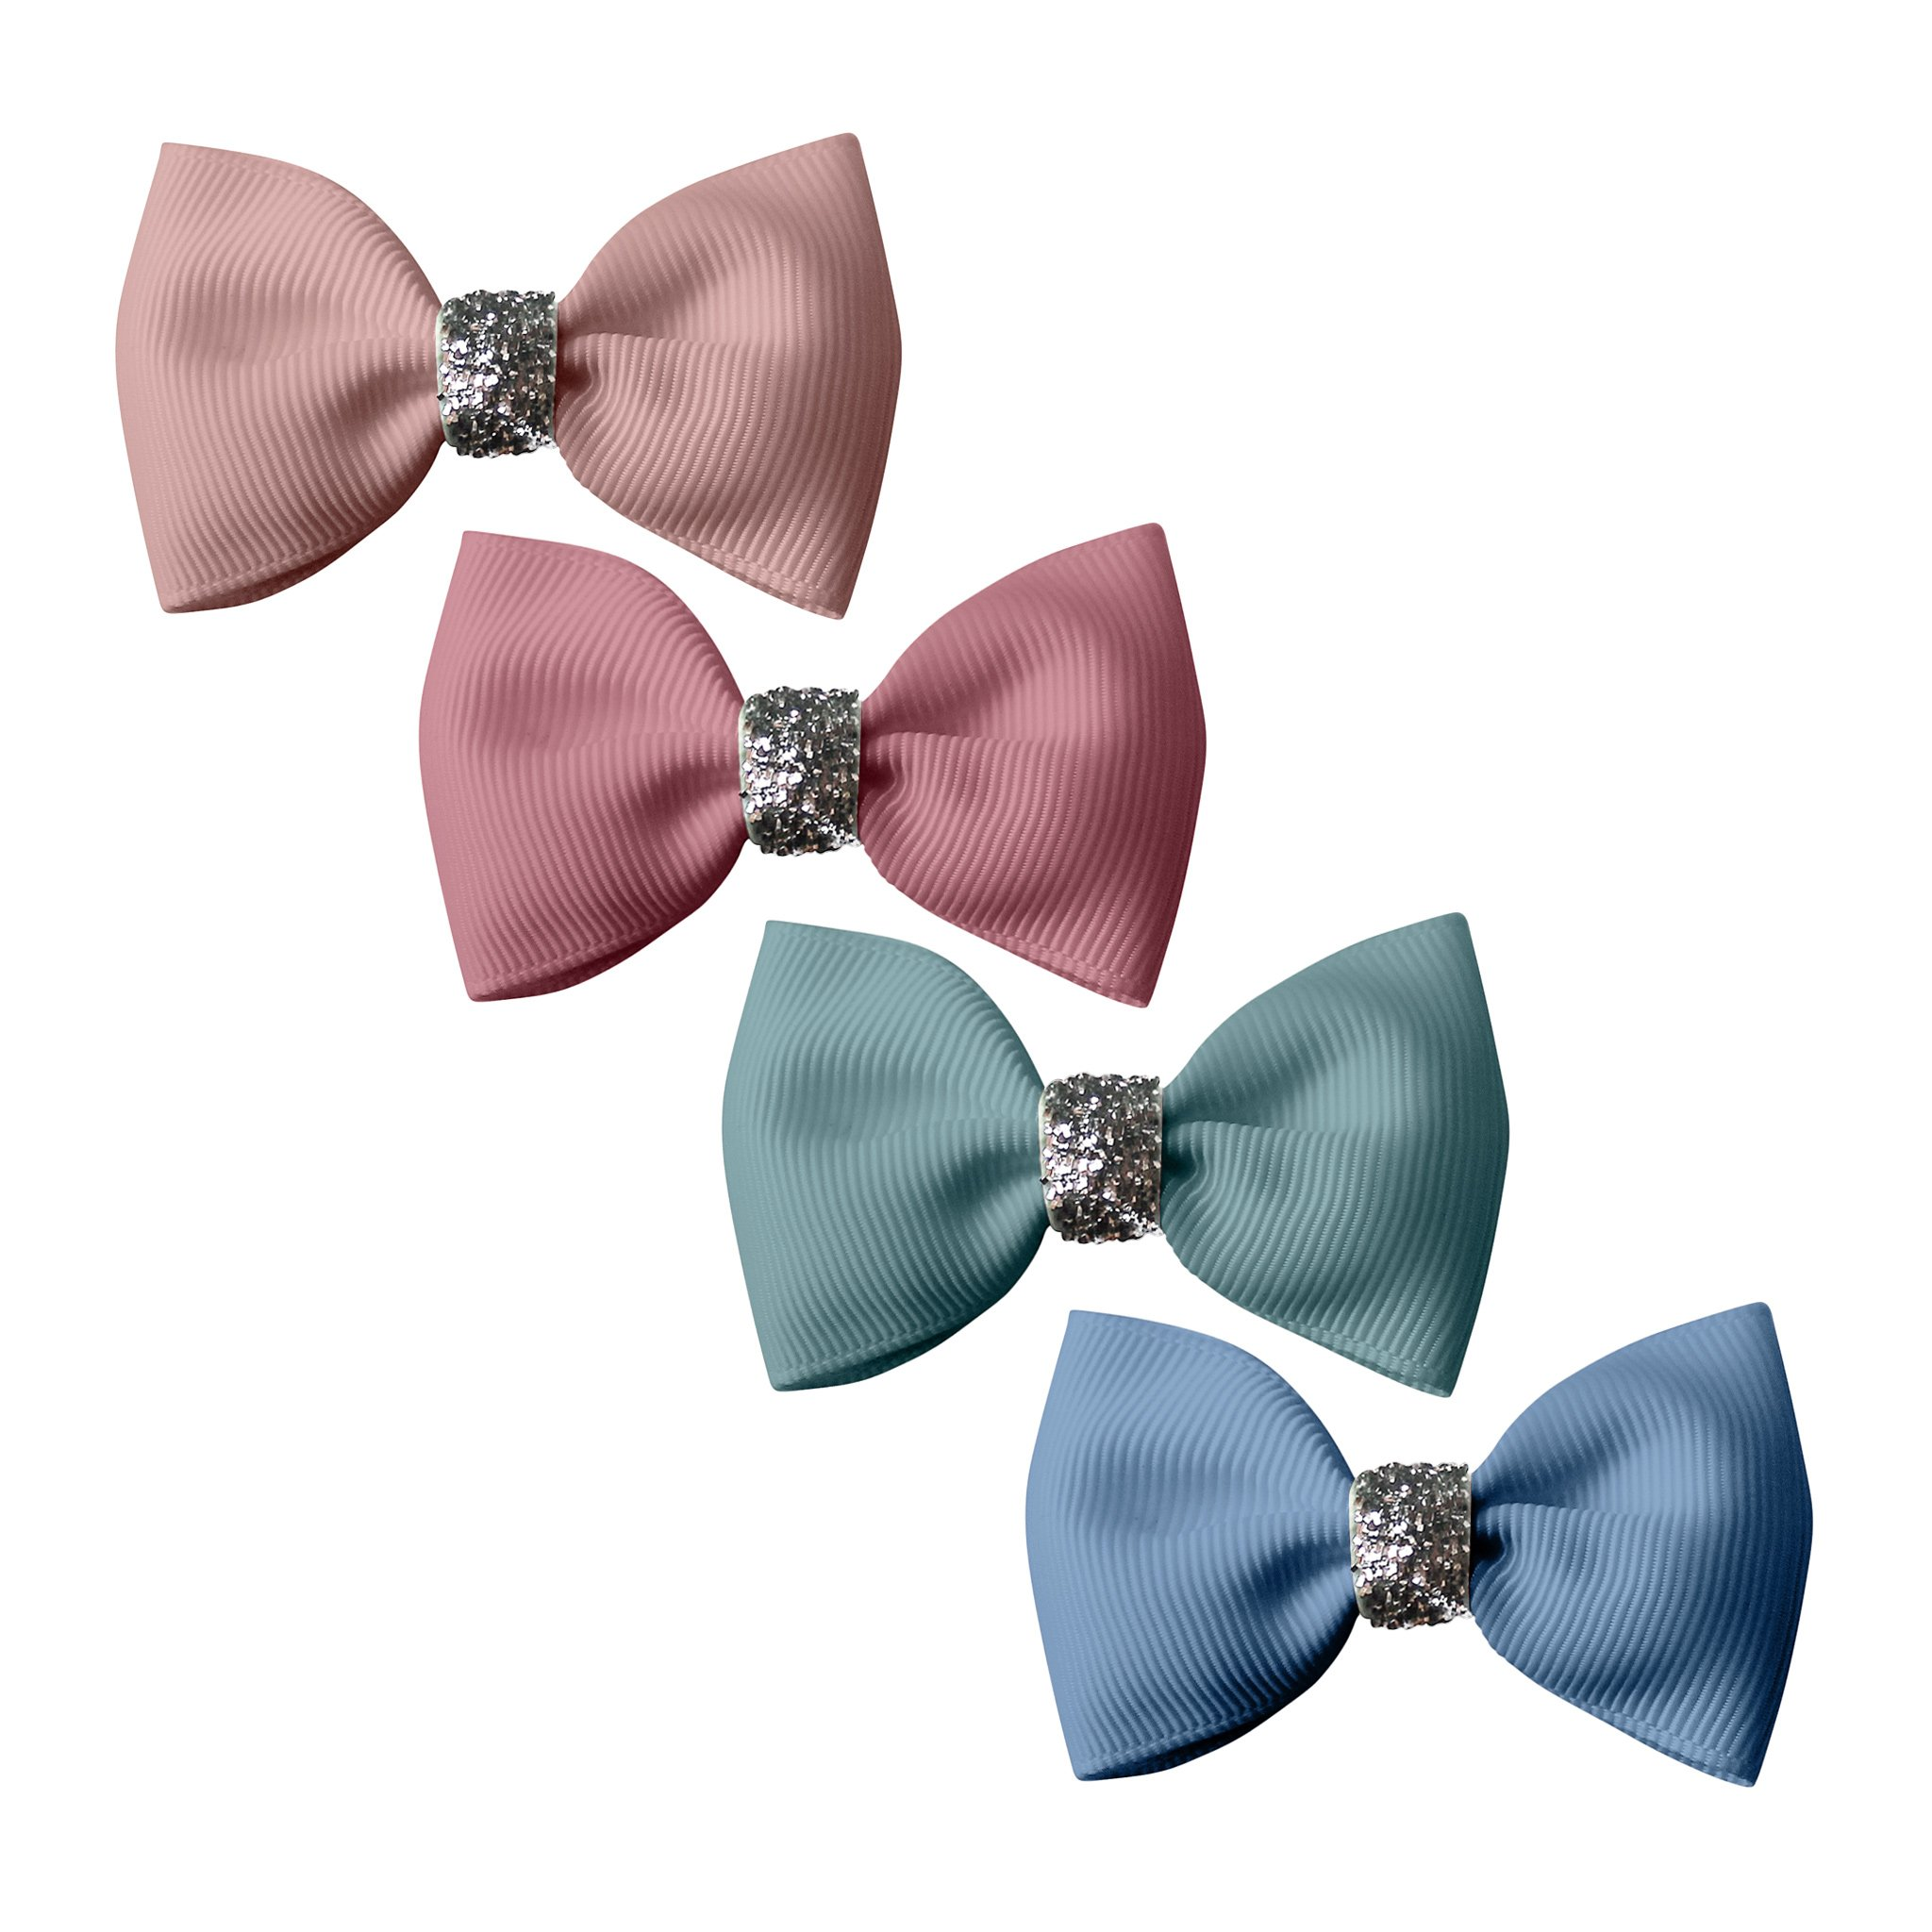 Image of Milledeux® Gift set - 4 Small bowtie bows - alligator clip - Glitter various